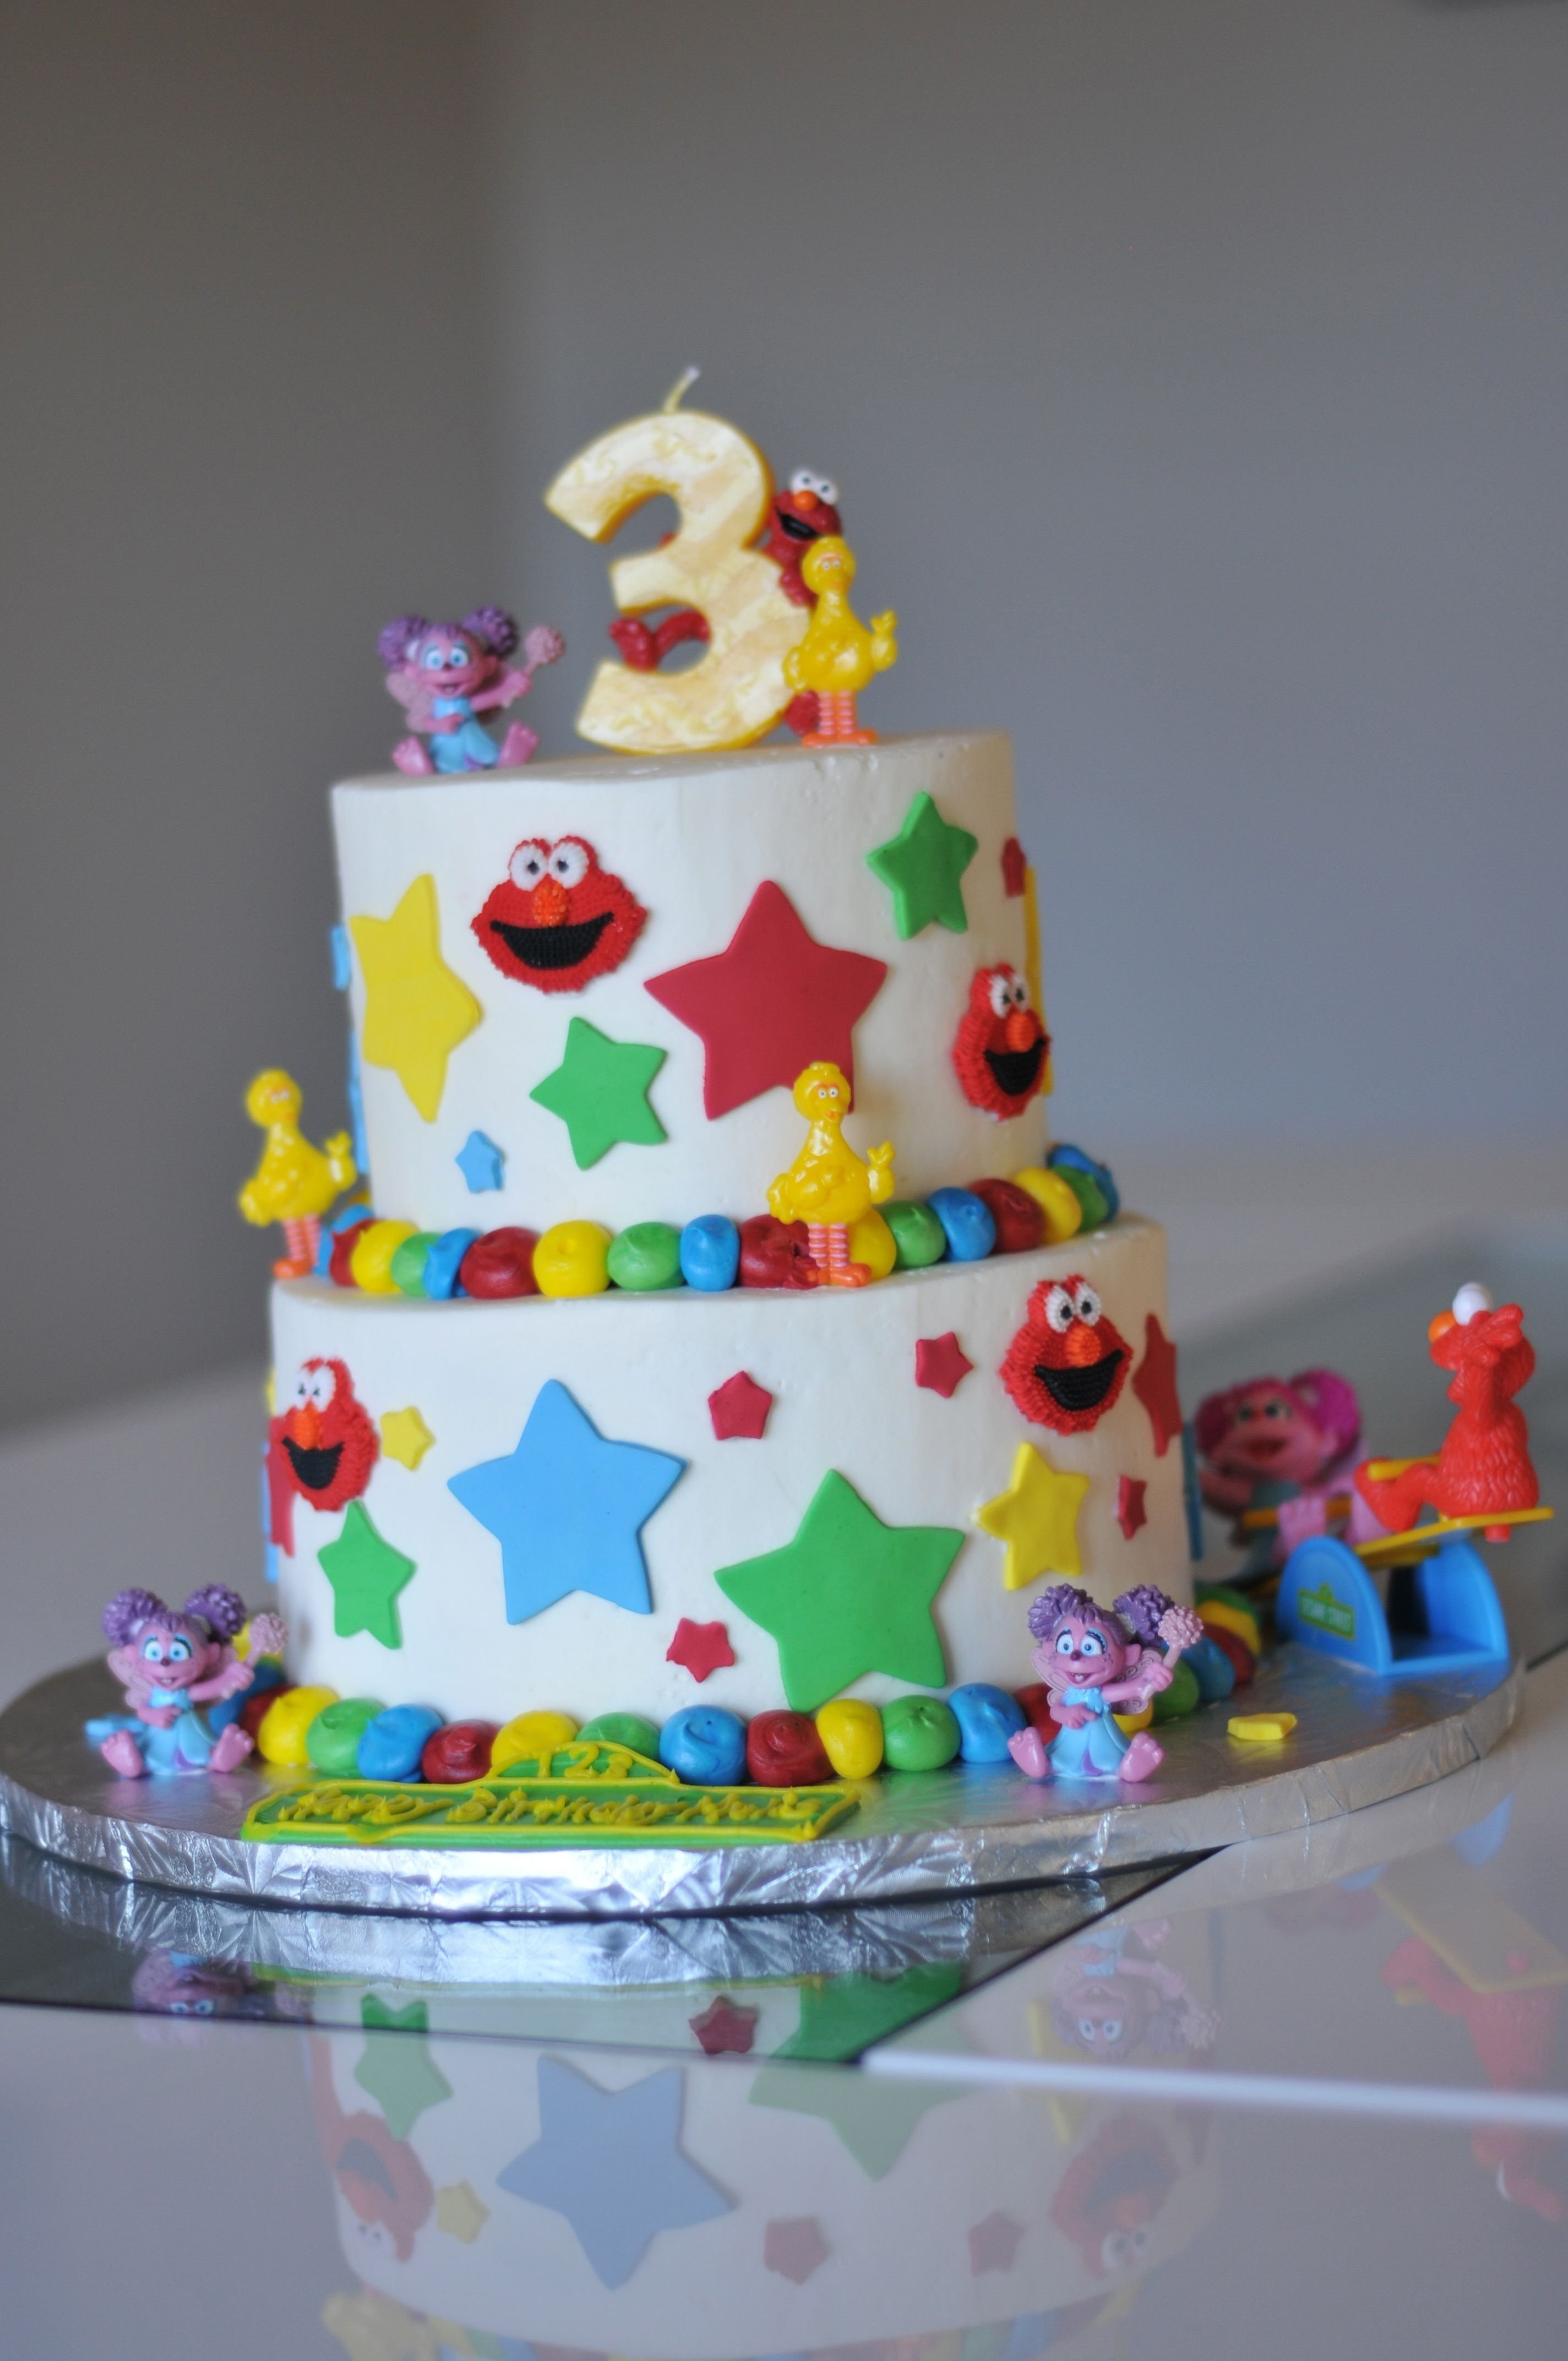 10 Fantastic 3 Year Old Birthday Cake Ideas very cool birthday cake for a 3 year old girl food drink 2